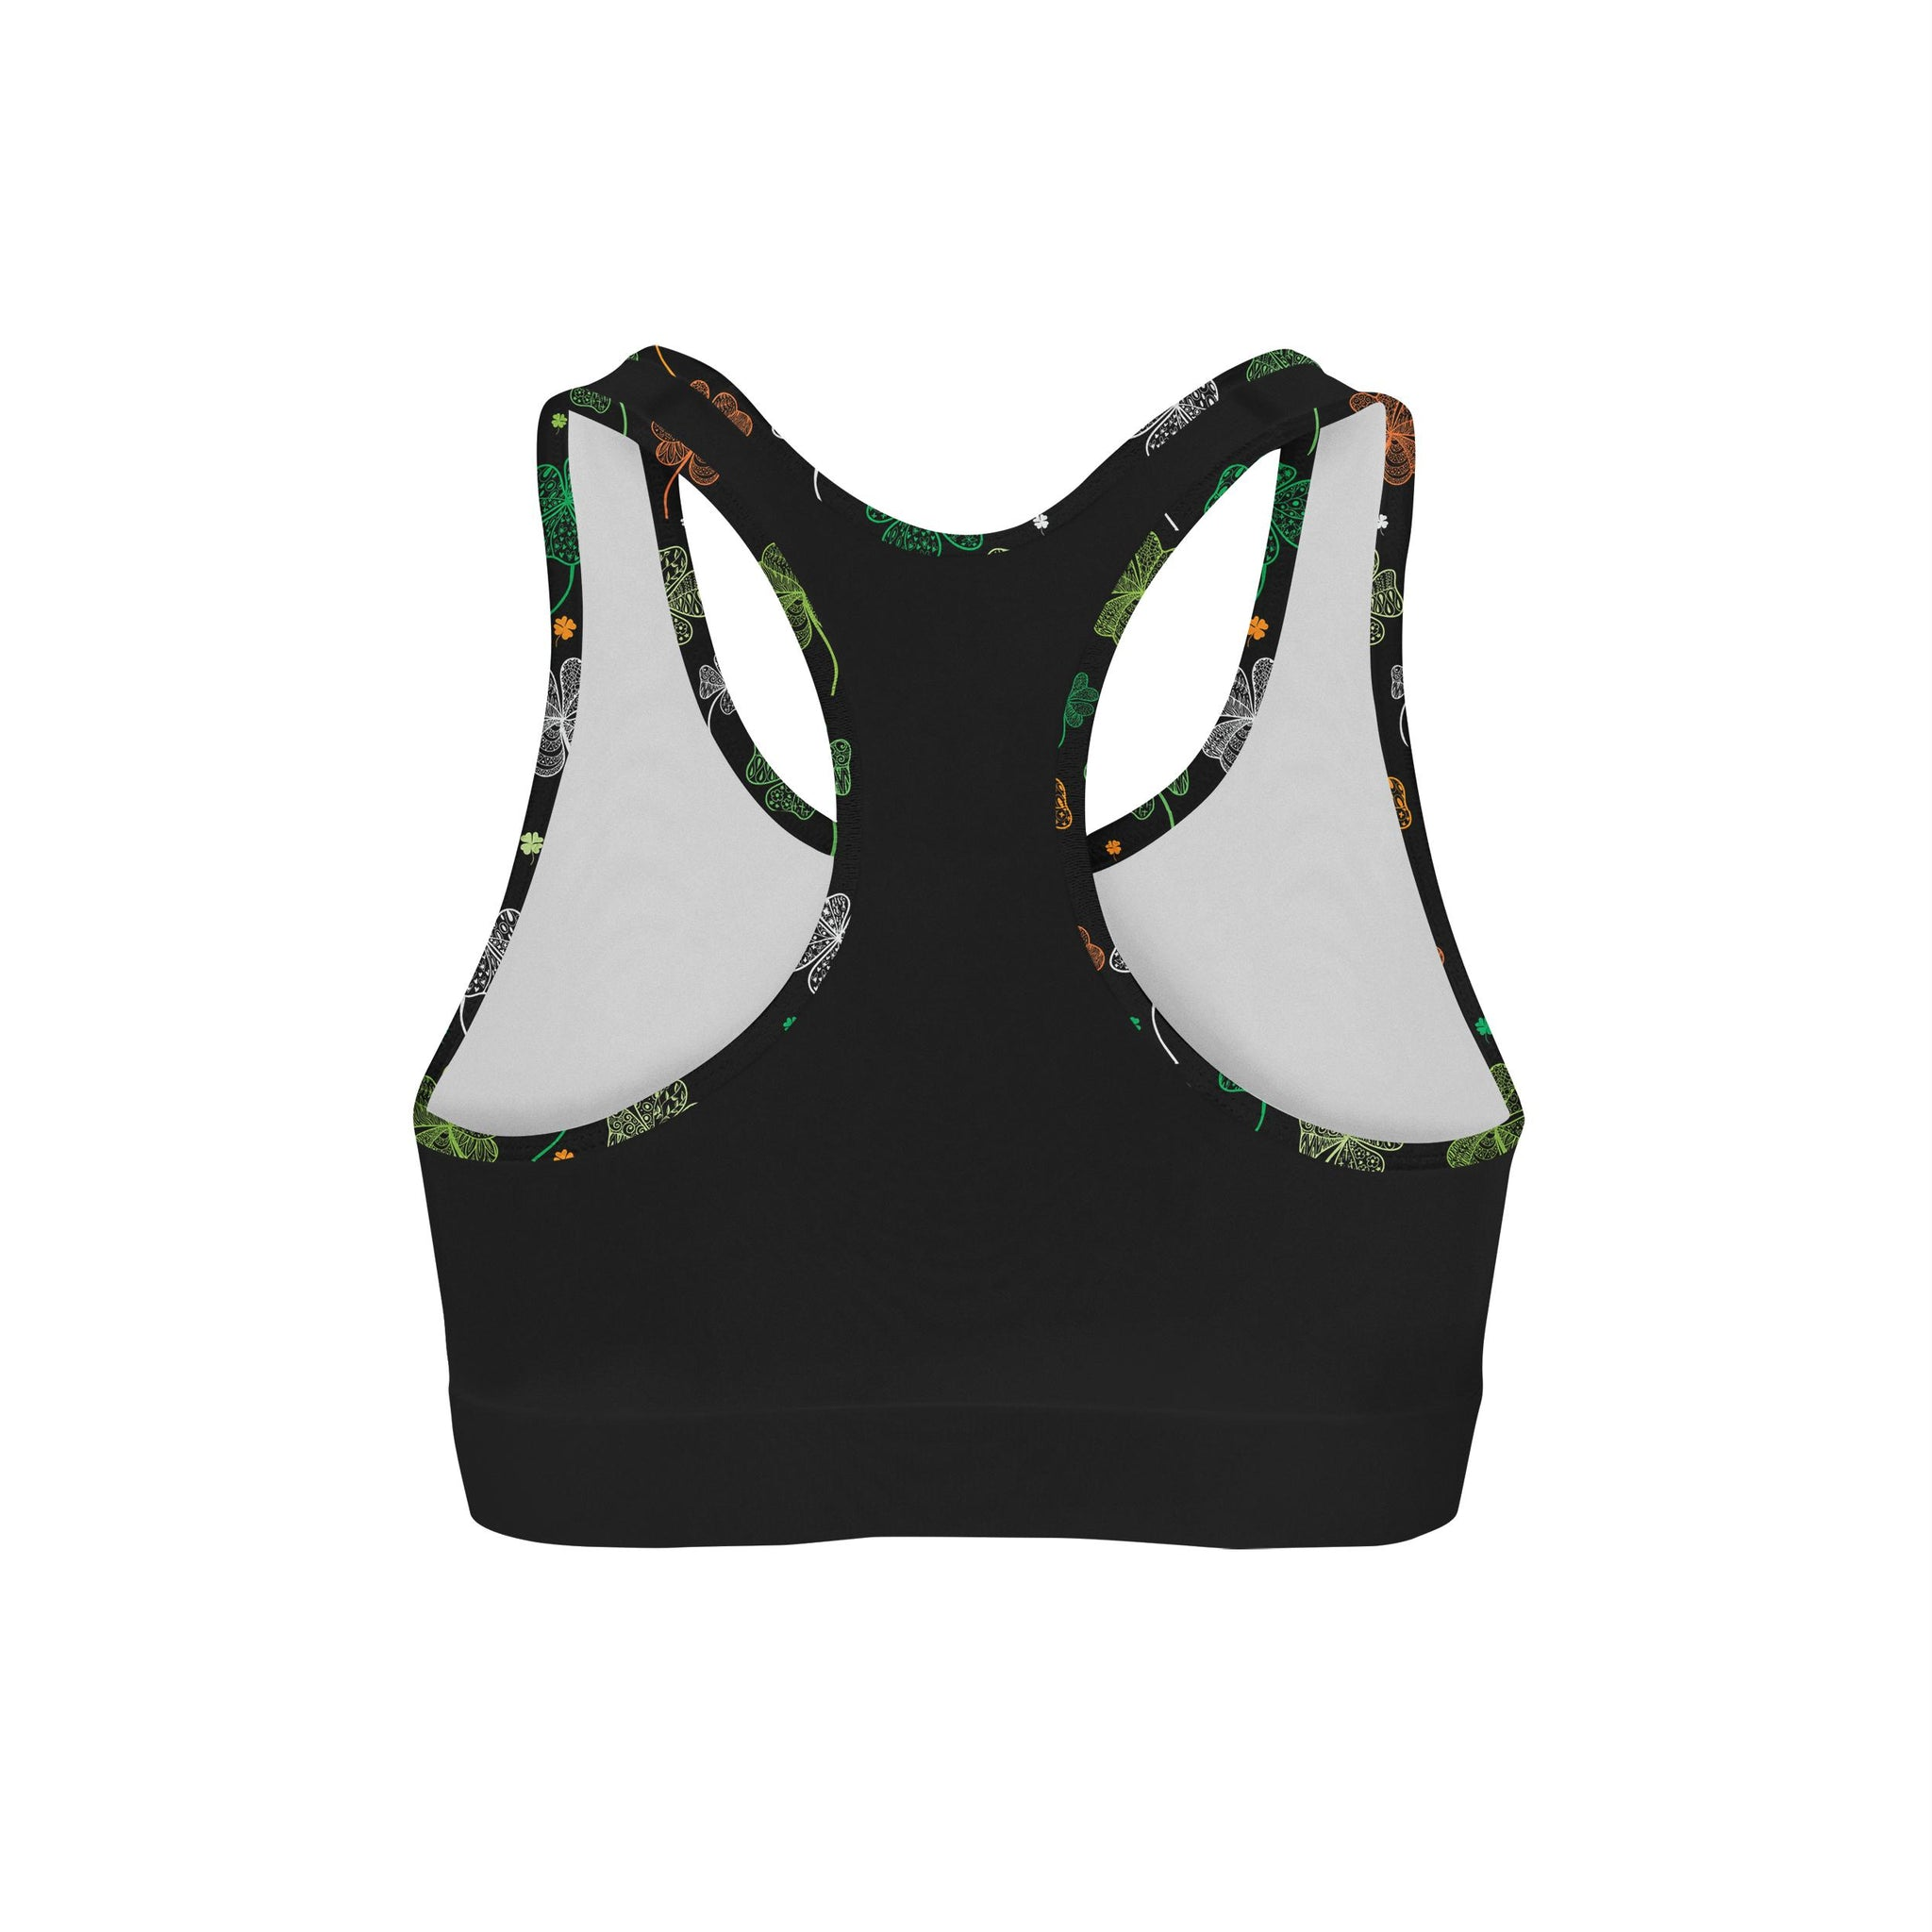 Aoife's Garden Mirror Sports Bra